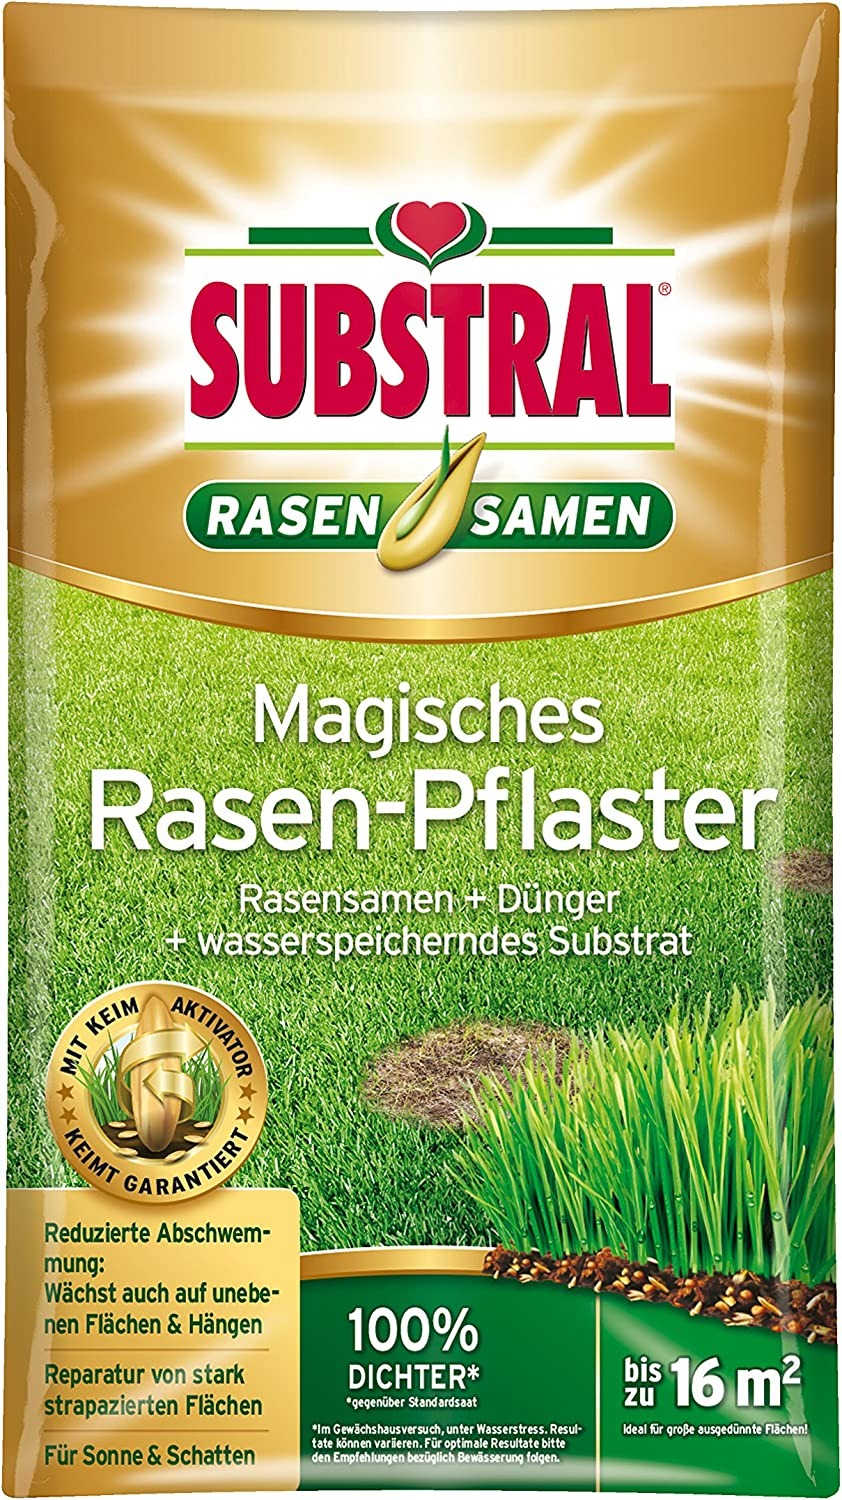 Substral Magic Lawn Patch, reparaciones de césped, semillas de césped, sustrato de primera calidad y fertilizante, 3,6 kg hasta 16 m²